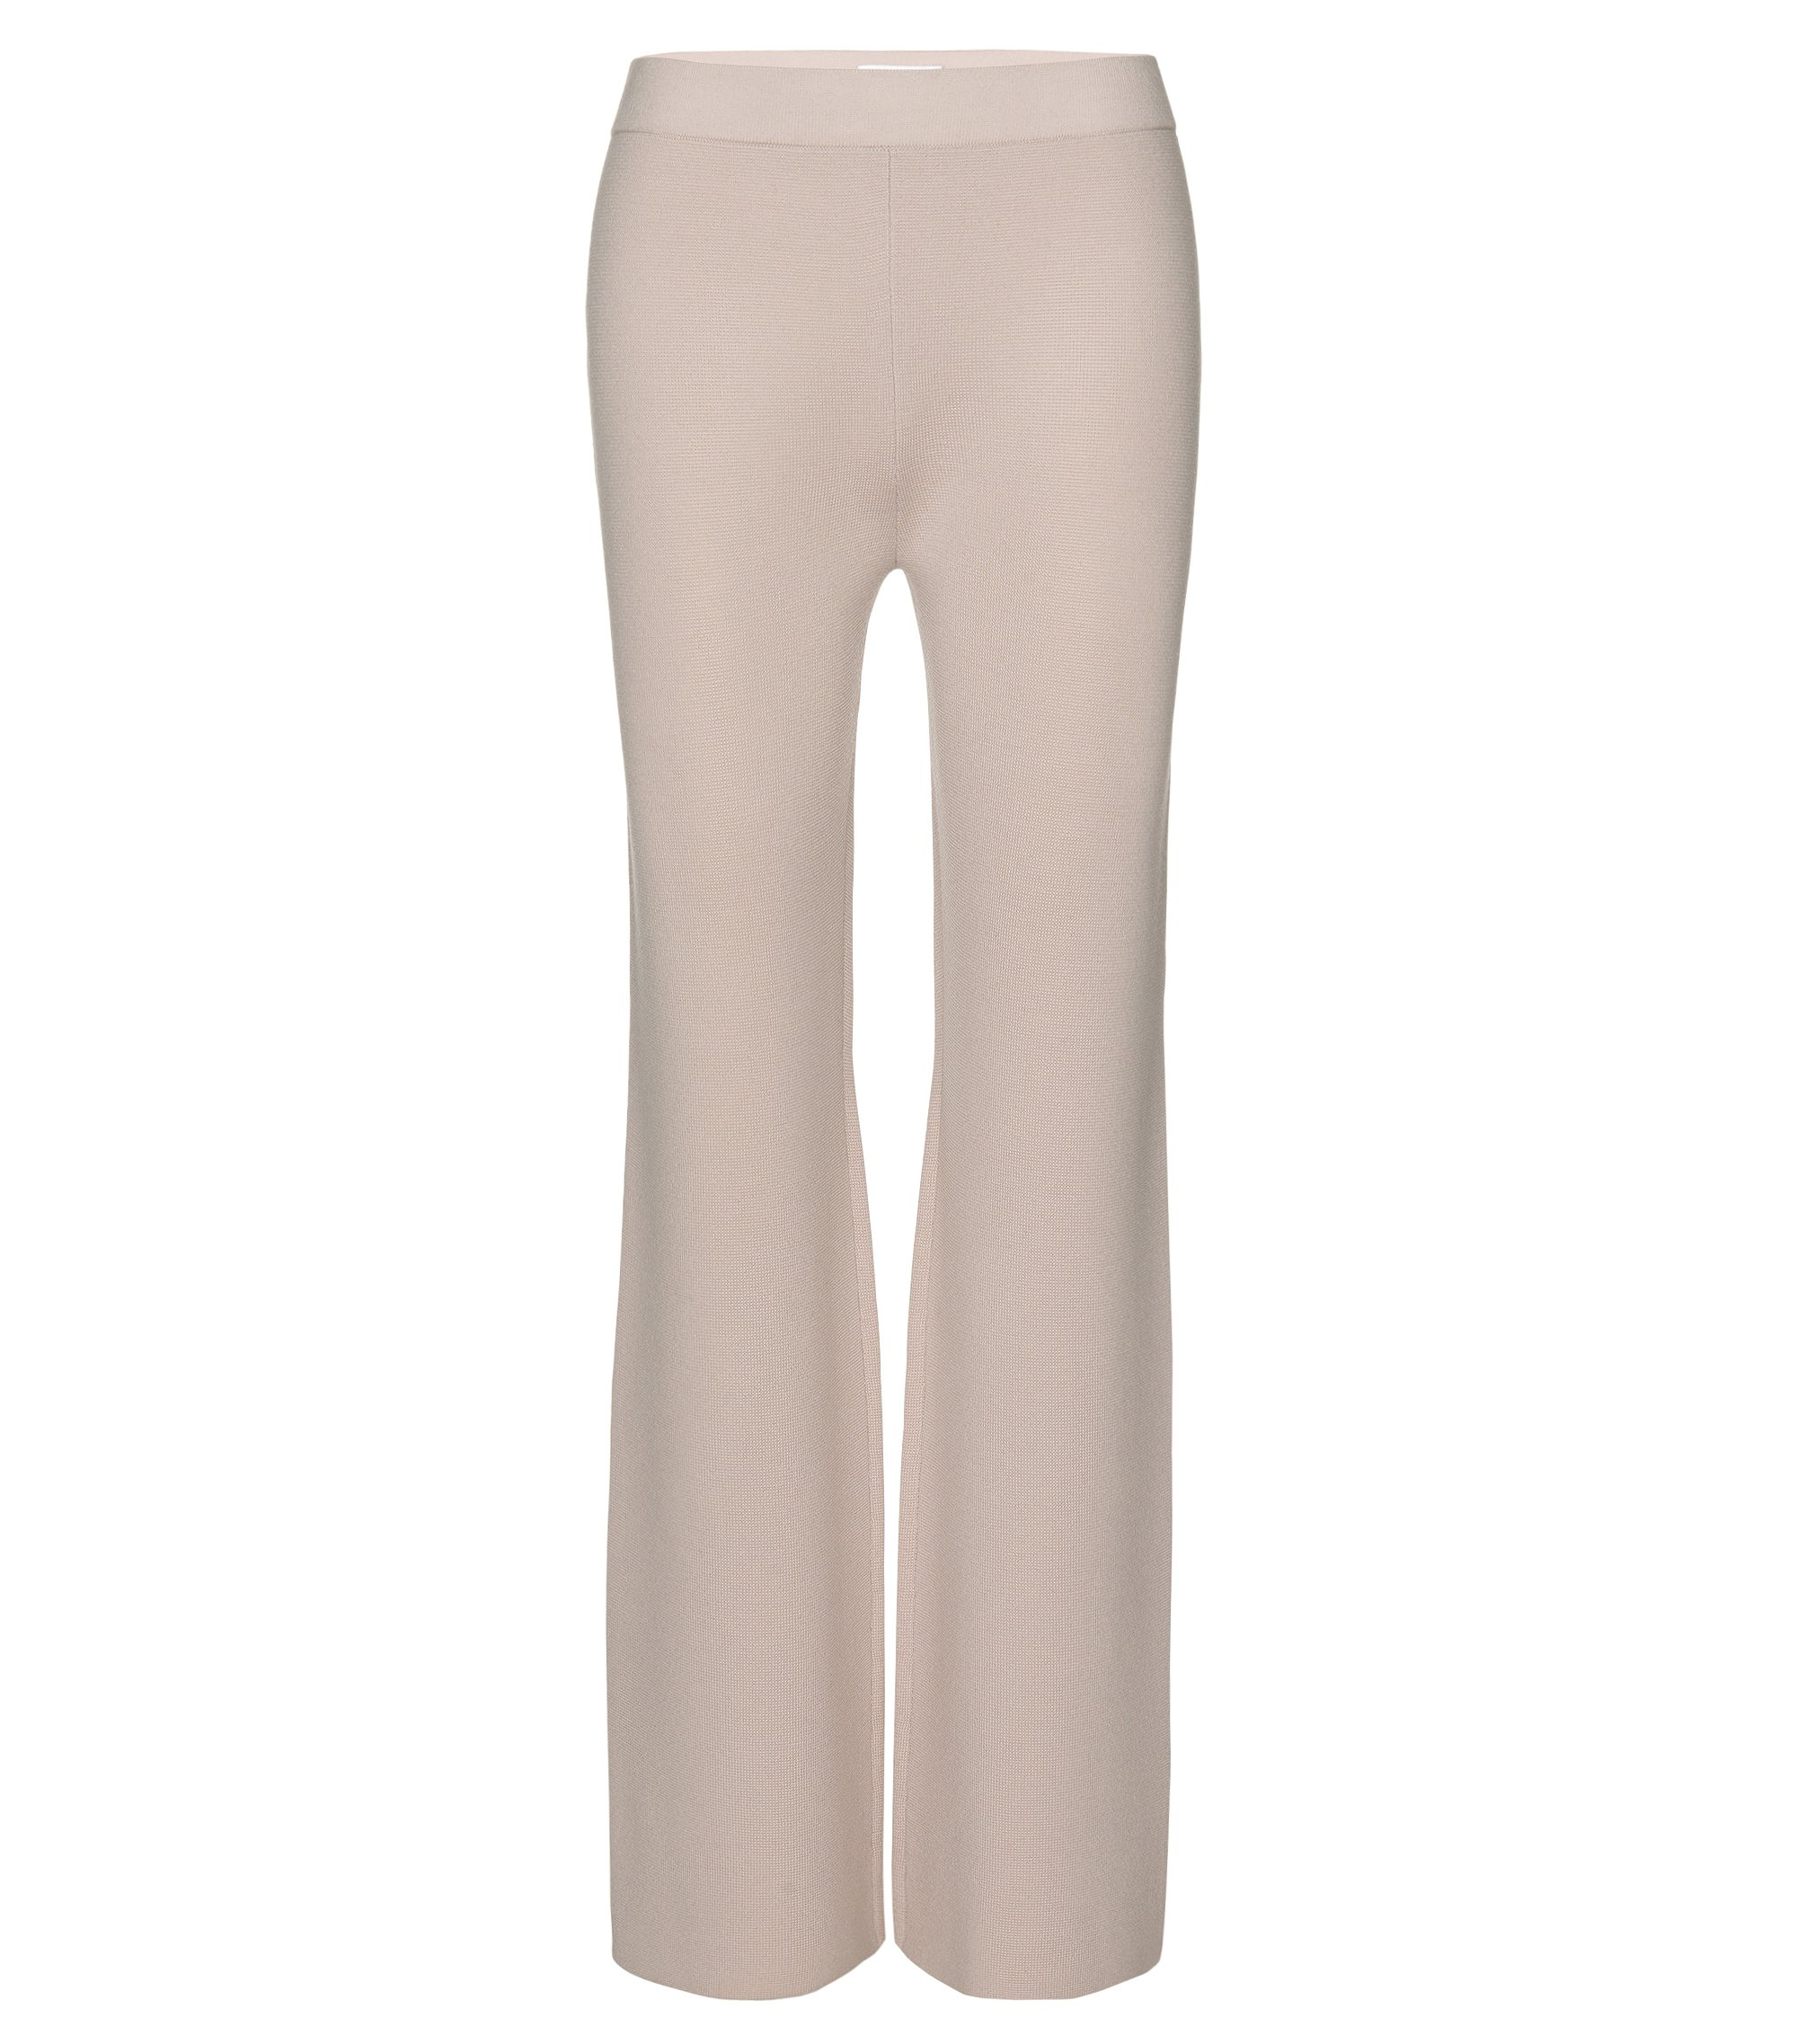 Mercerized Virgin Wool Knit Pant | Falali, Light Beige